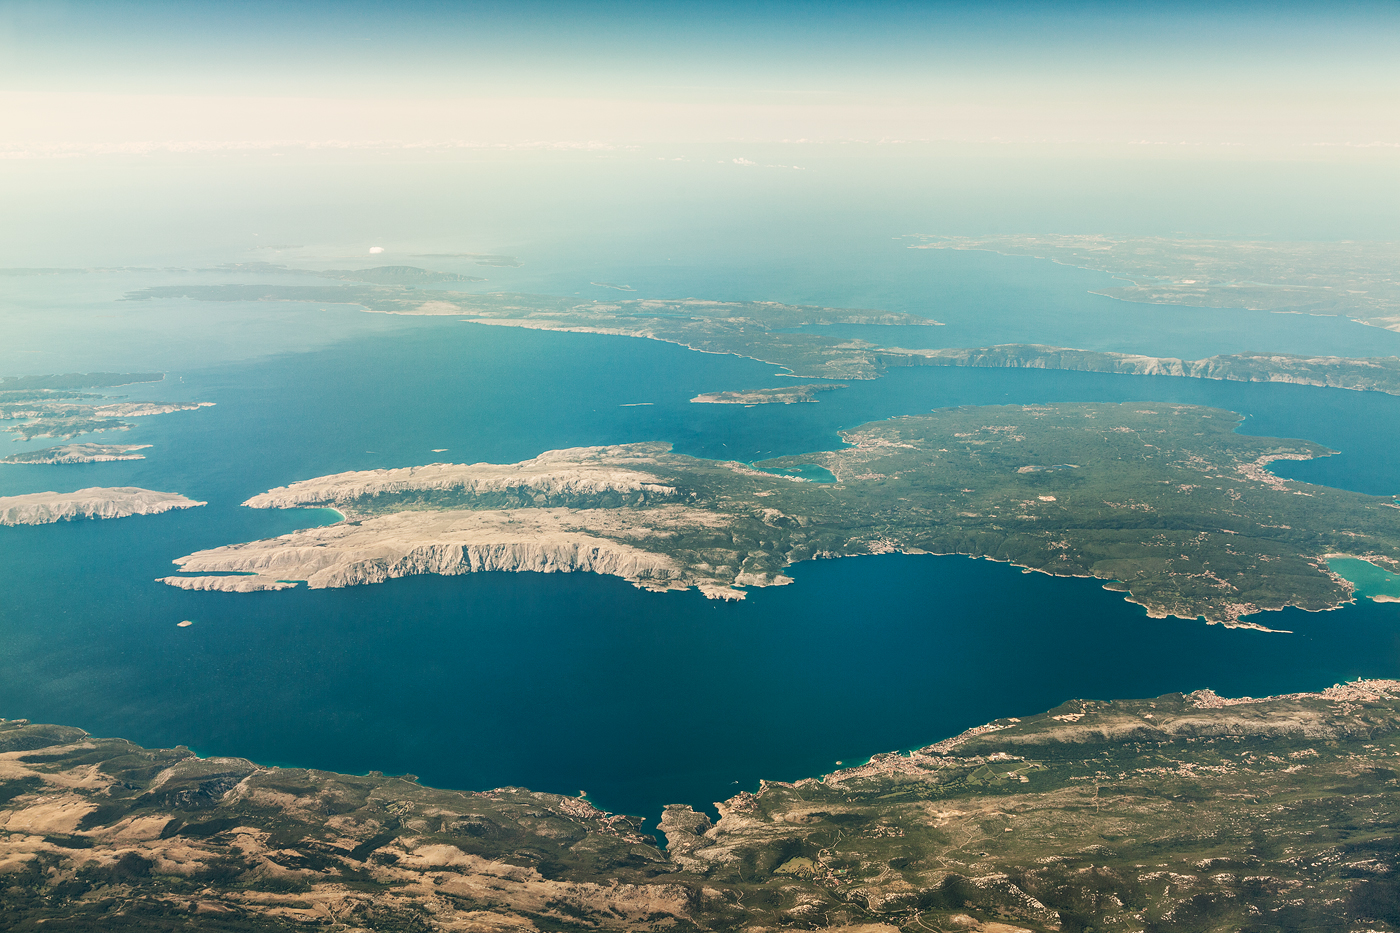 Aerial Landscape Nature contemporary weather light clouds structure above view Ocean cityscape Travel Urban Top Shot